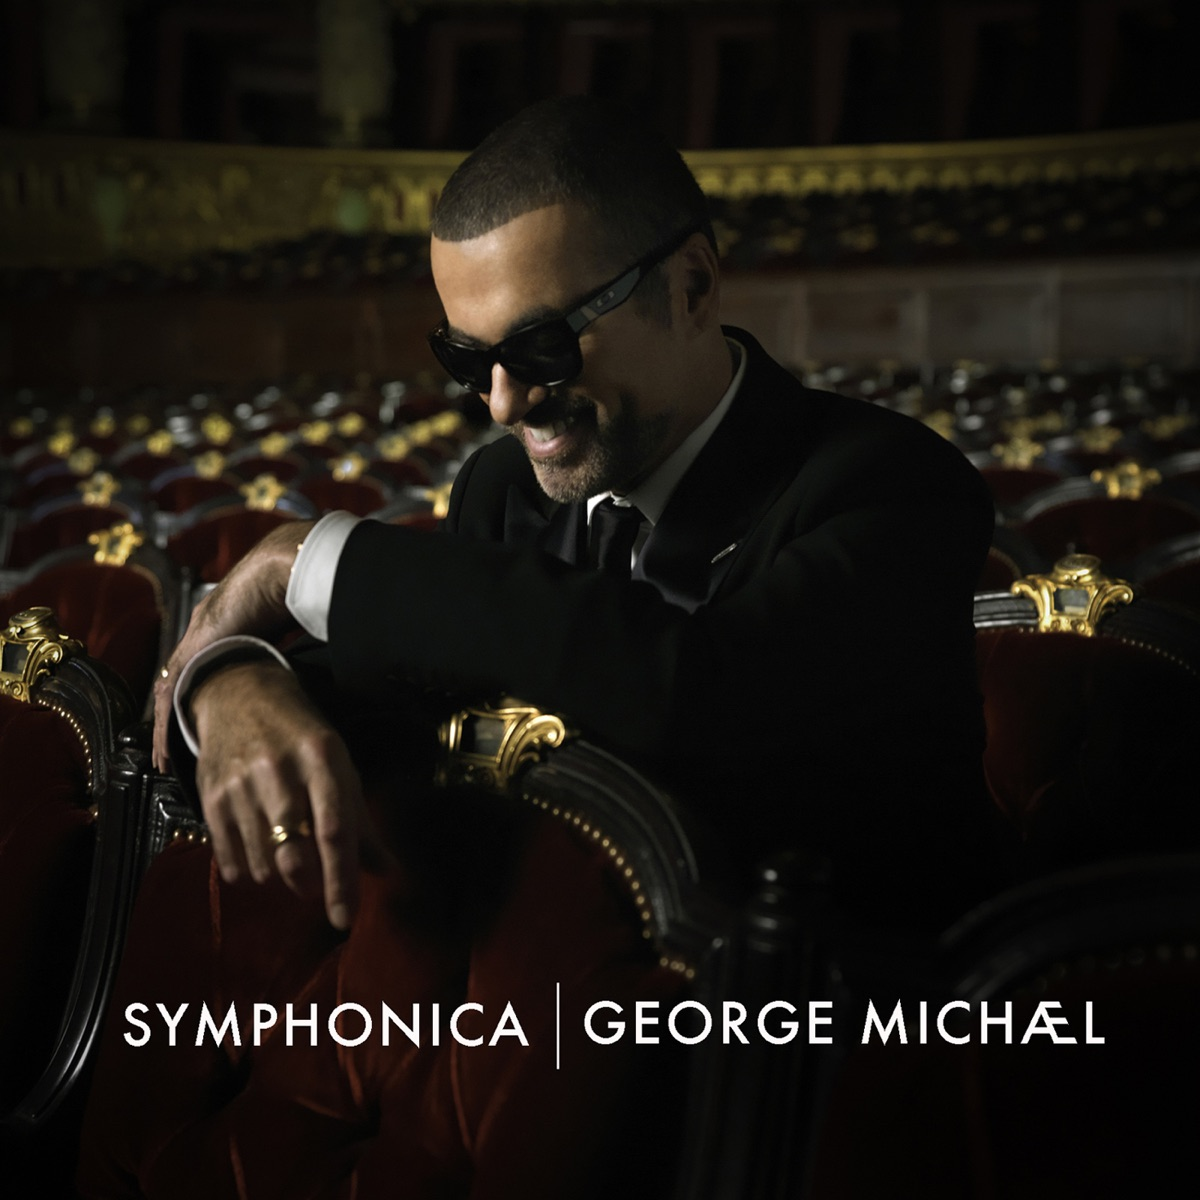 Symphonica Deluxe Version George Michael CD cover